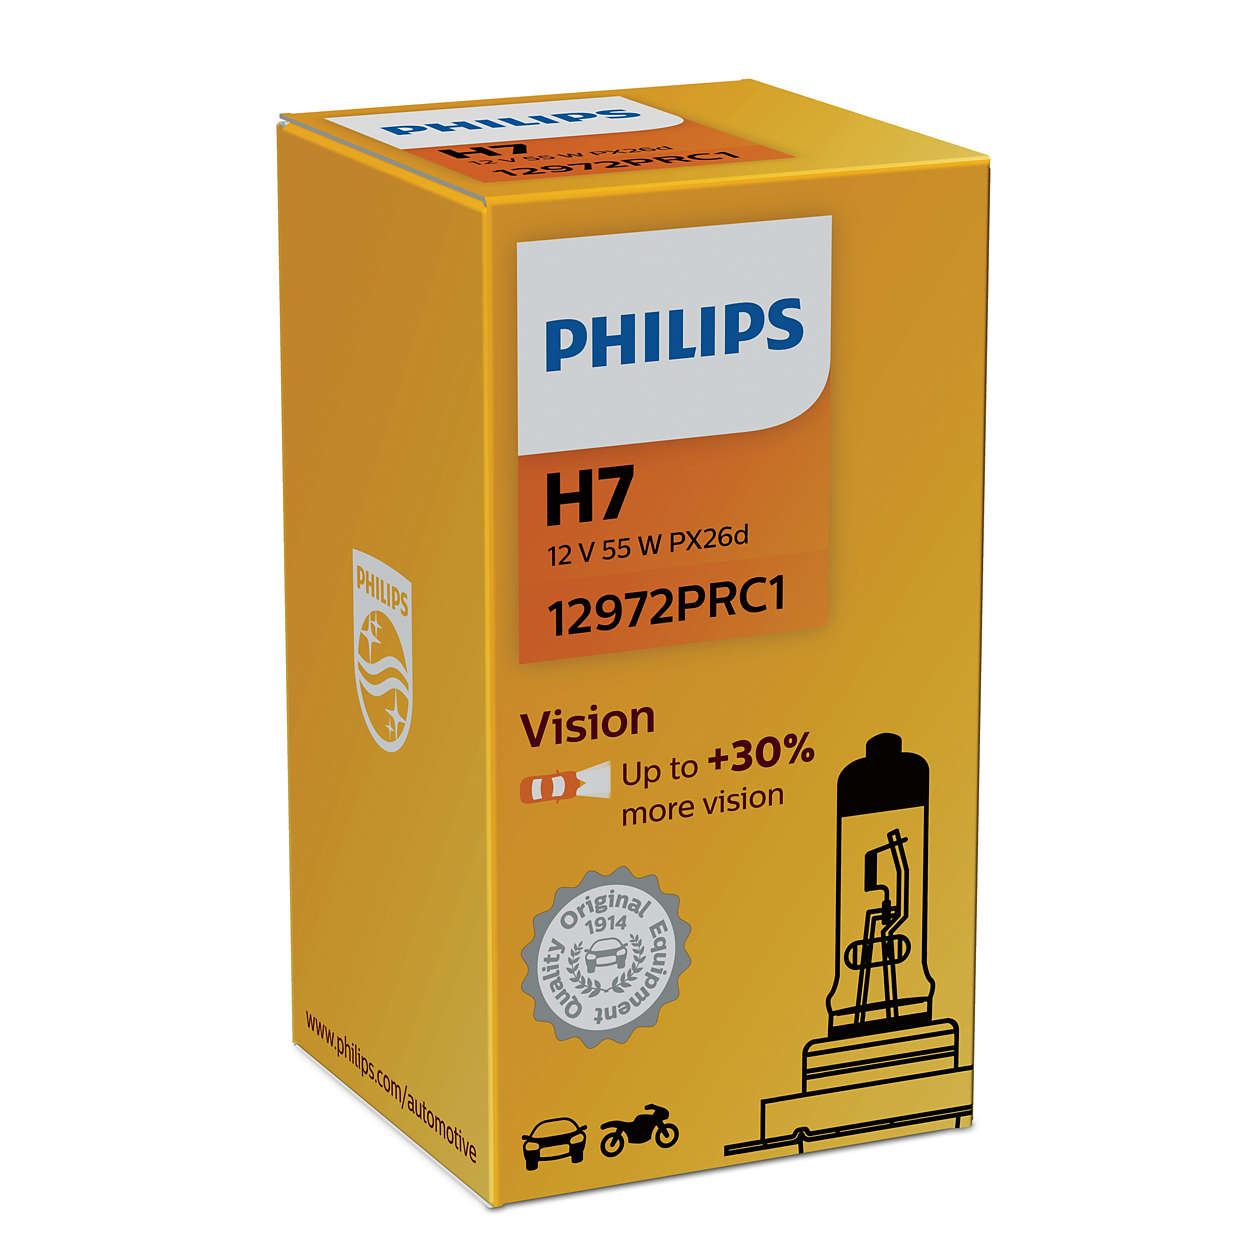 Philips Vision+30% 12972PRC1 H7 PX26d 12V 55W